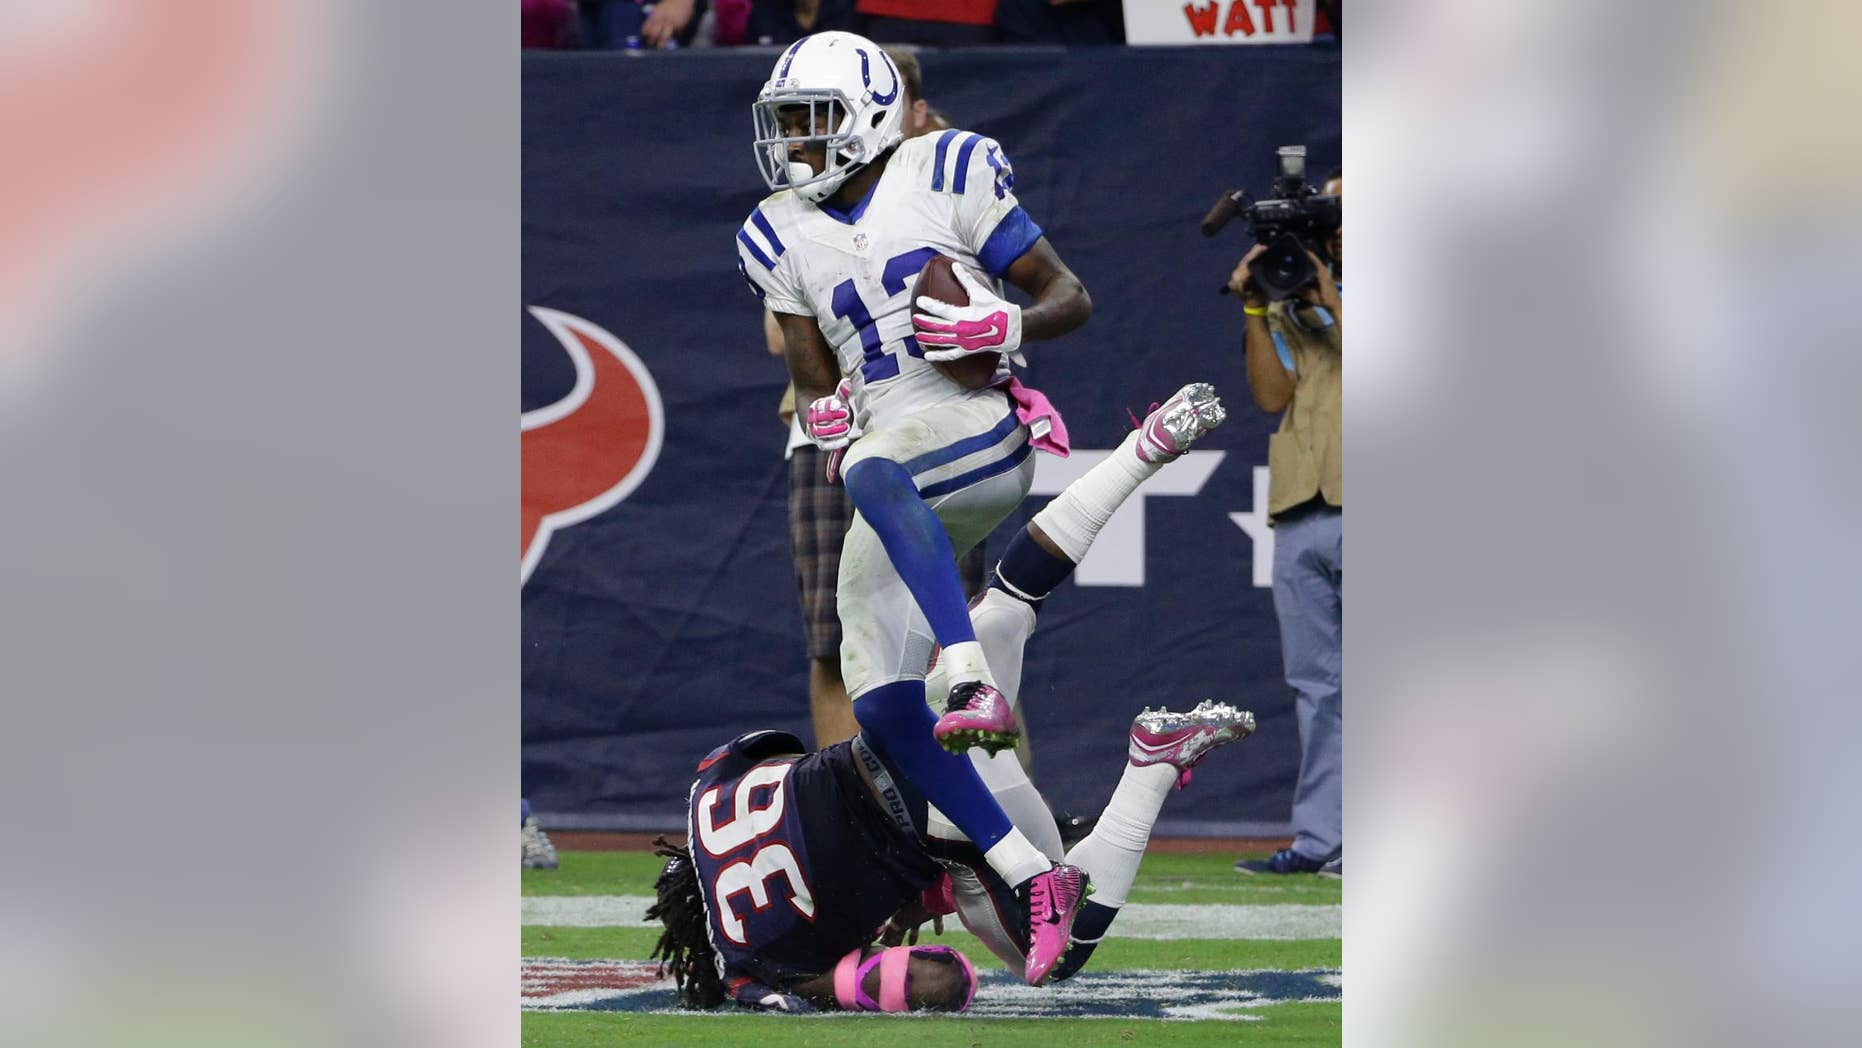 Indianapolis Colts' T.Y. Hilton (13) catches a pass for a touchdown as Houston Texans' D.J. Swearinger (36) defends the play during the second half of an NFL football game, Thursday, Oct. 9, 2014, in Houston. (AP Photo/David J. Phillip)